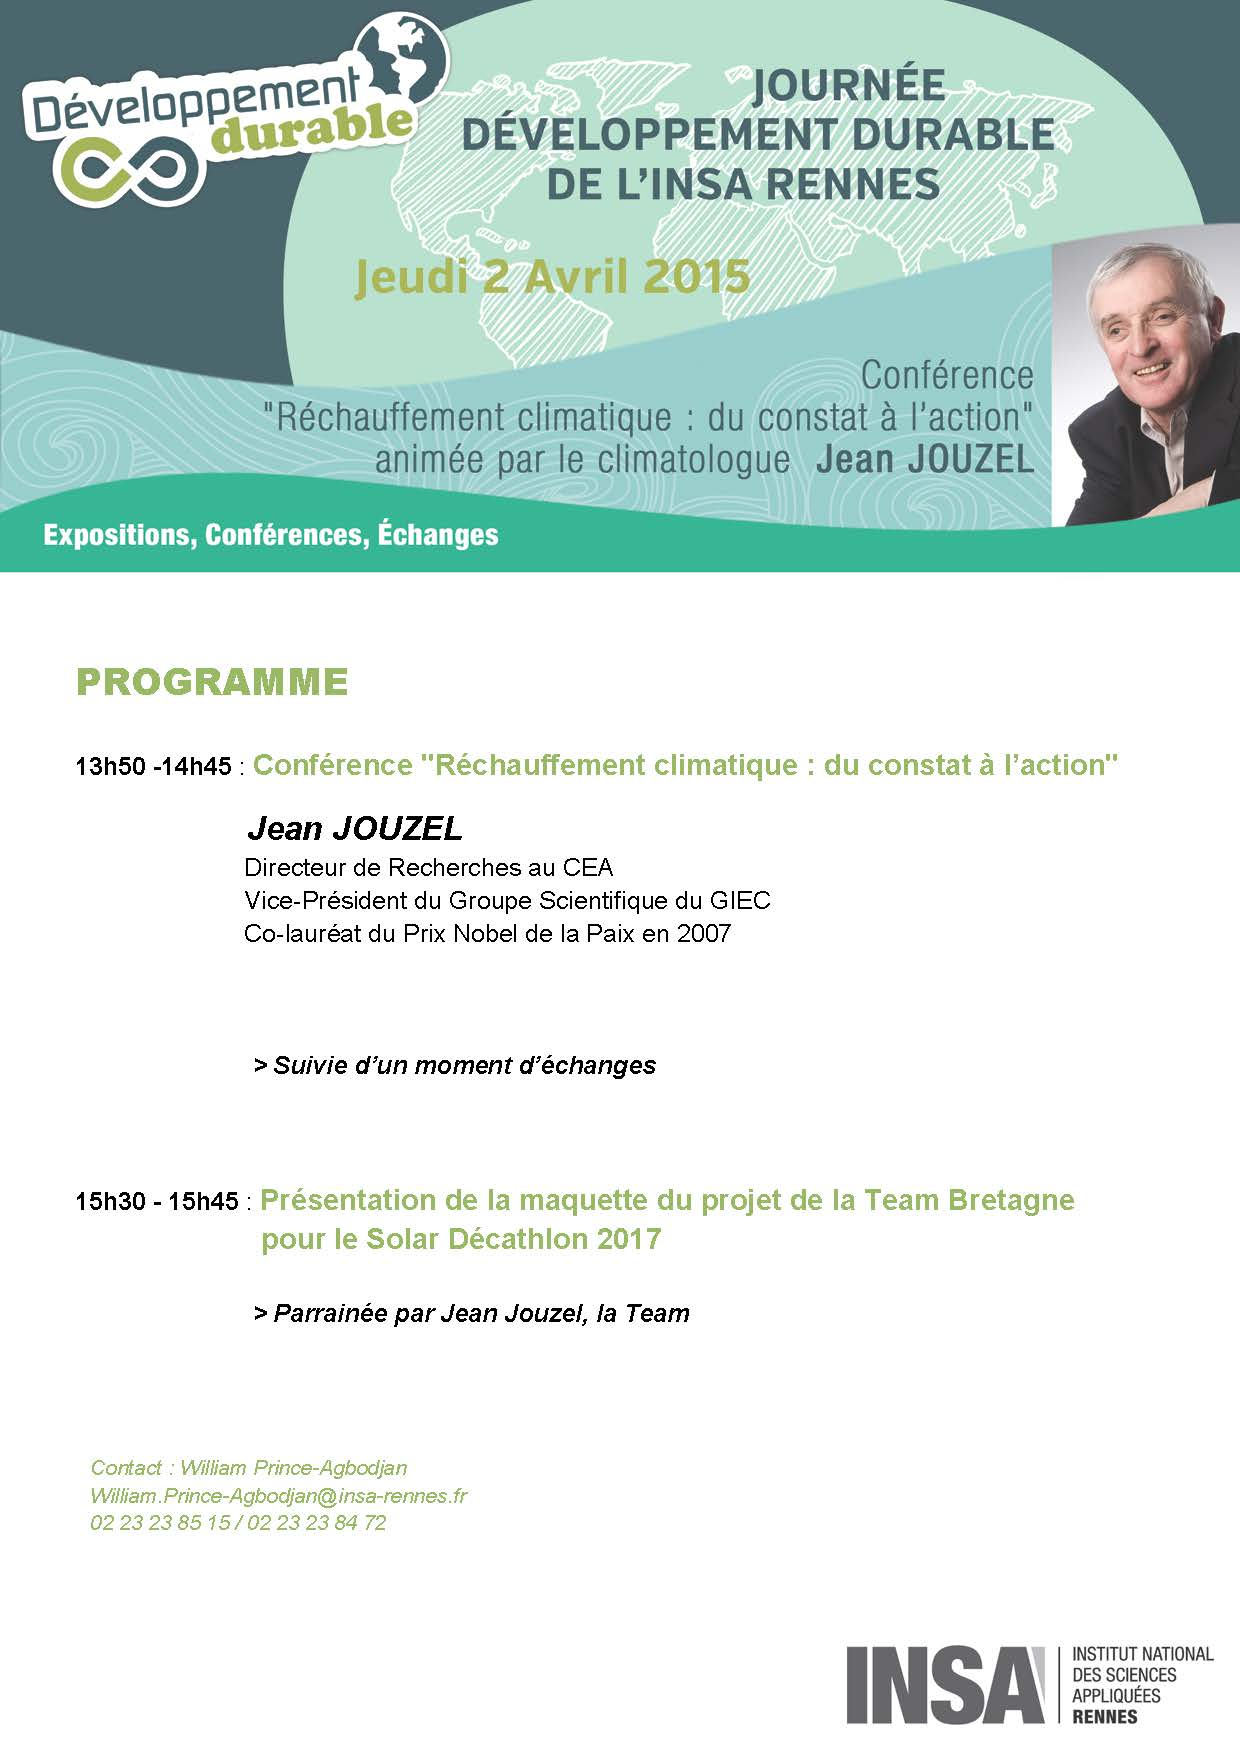 Programme-Journee-DeveloppementDurable-1